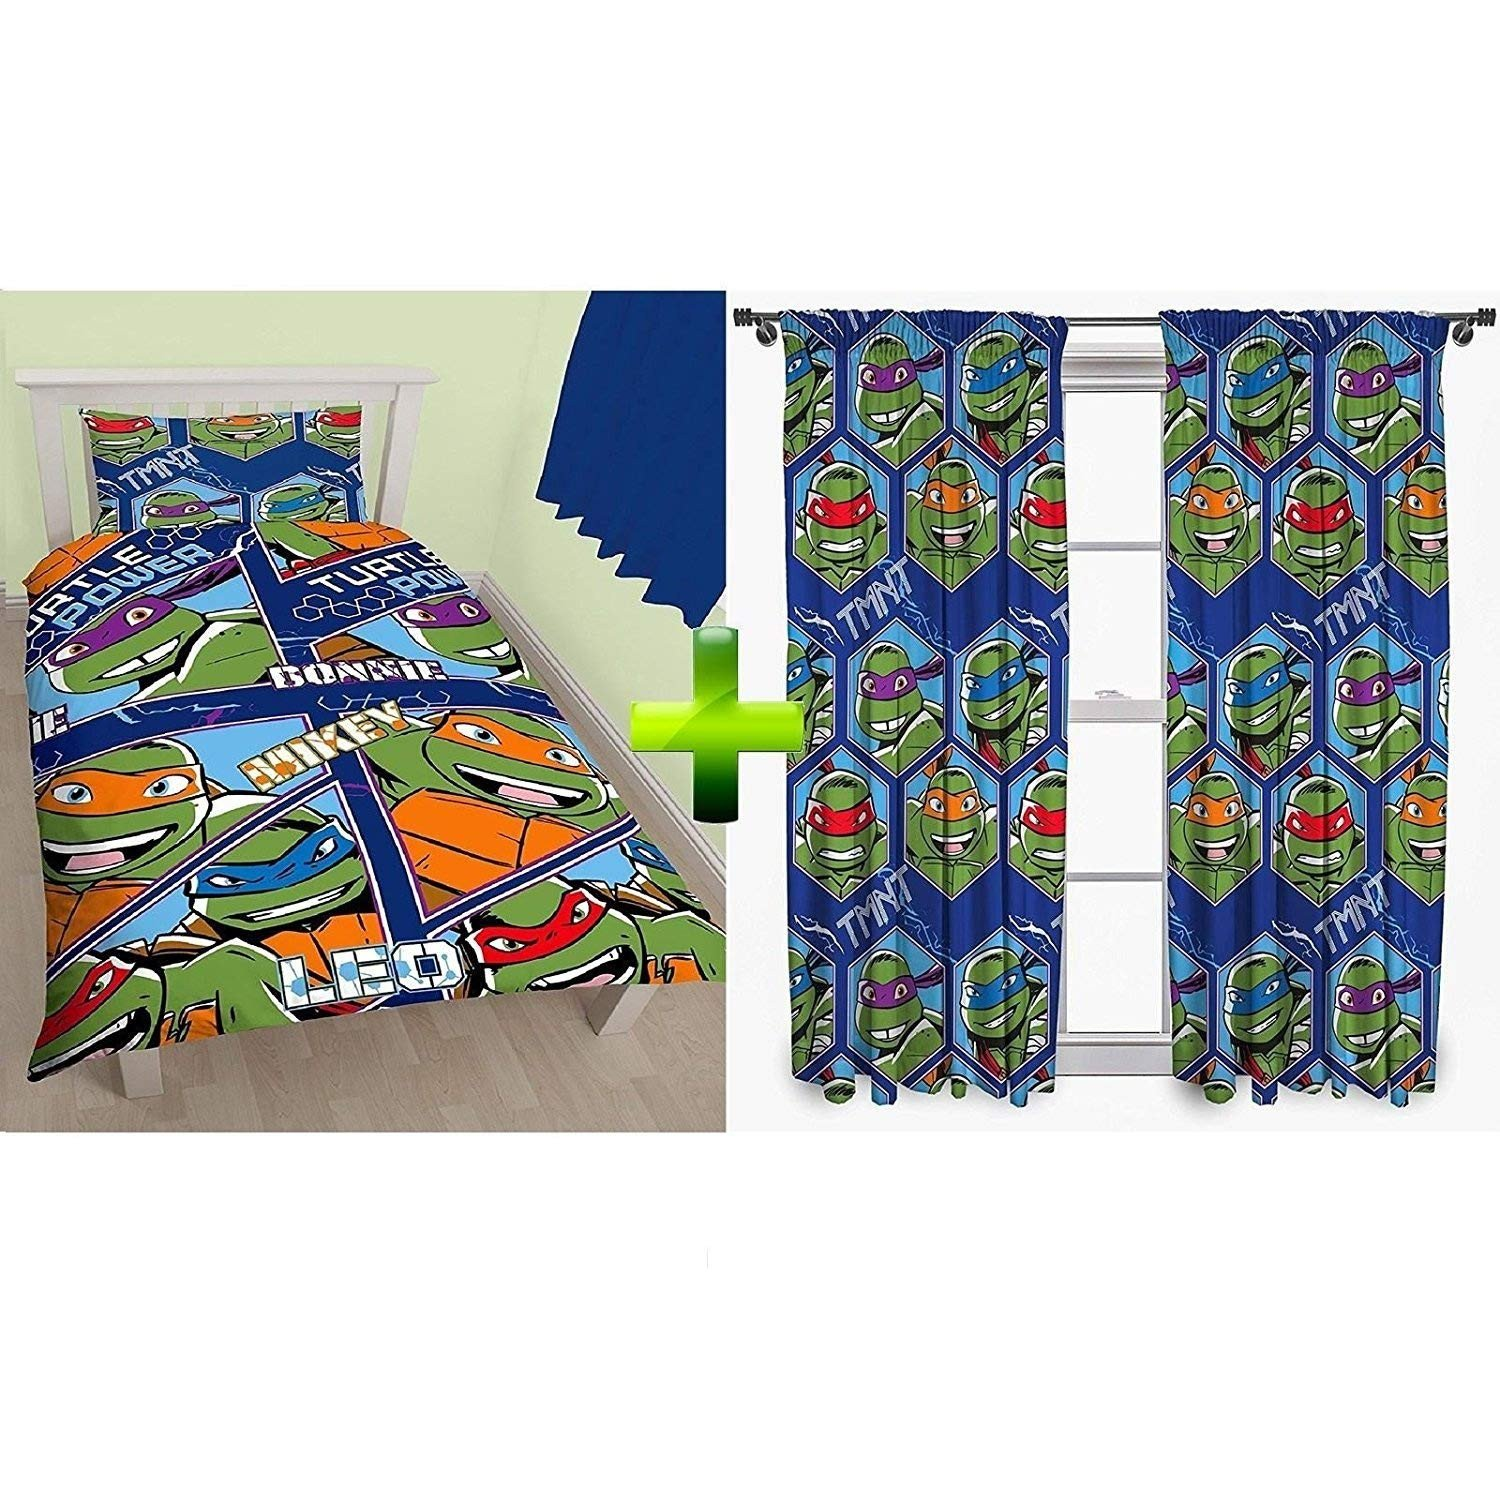 "Teenage Mutant Ninja Turtles Bedroom Inspirational Teenage Mutant Ninja Turtles 66x54"" Curtains Tmnt Single Duvet Set Quilt Cover Bedding"